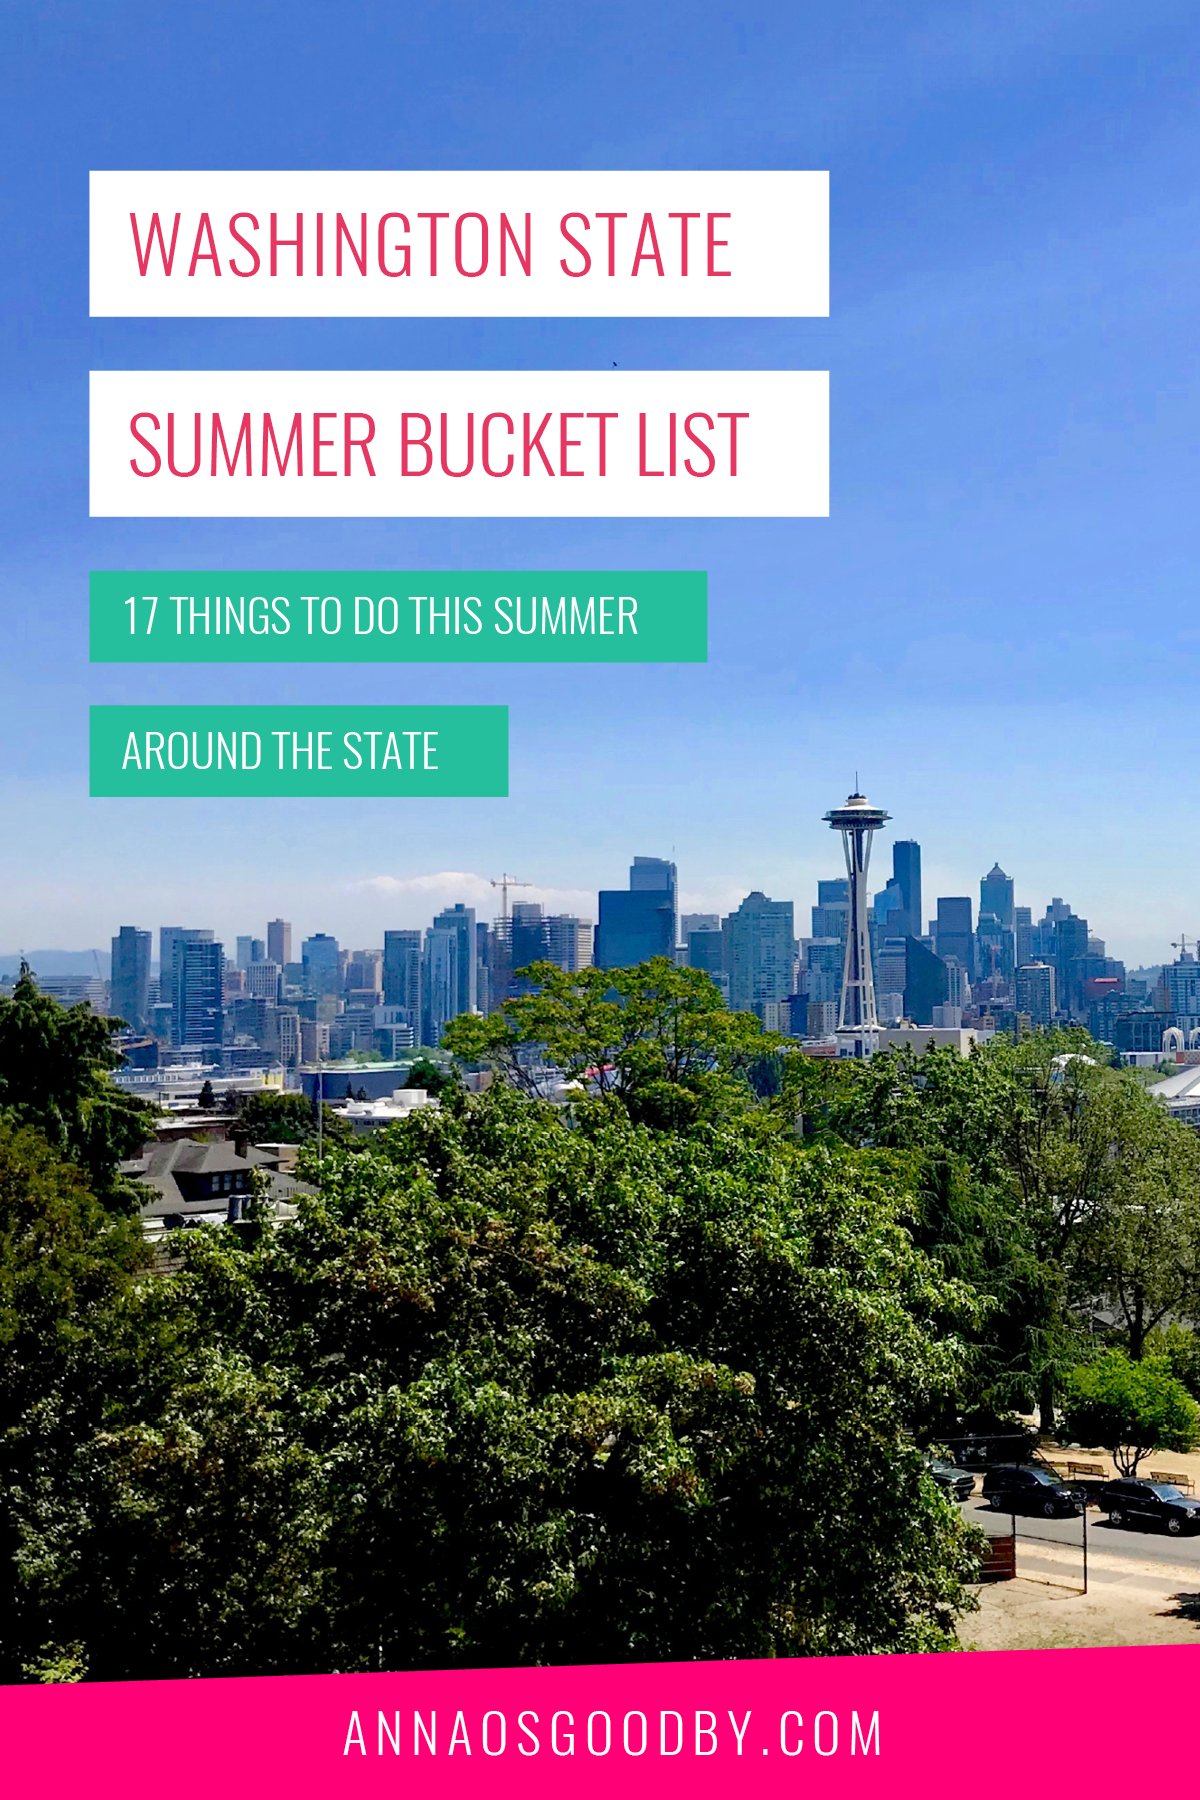 Anna Osgoodby Life + Biz :: Washington State Summer Bucket List :: 17 Things to do this Summer Around the State